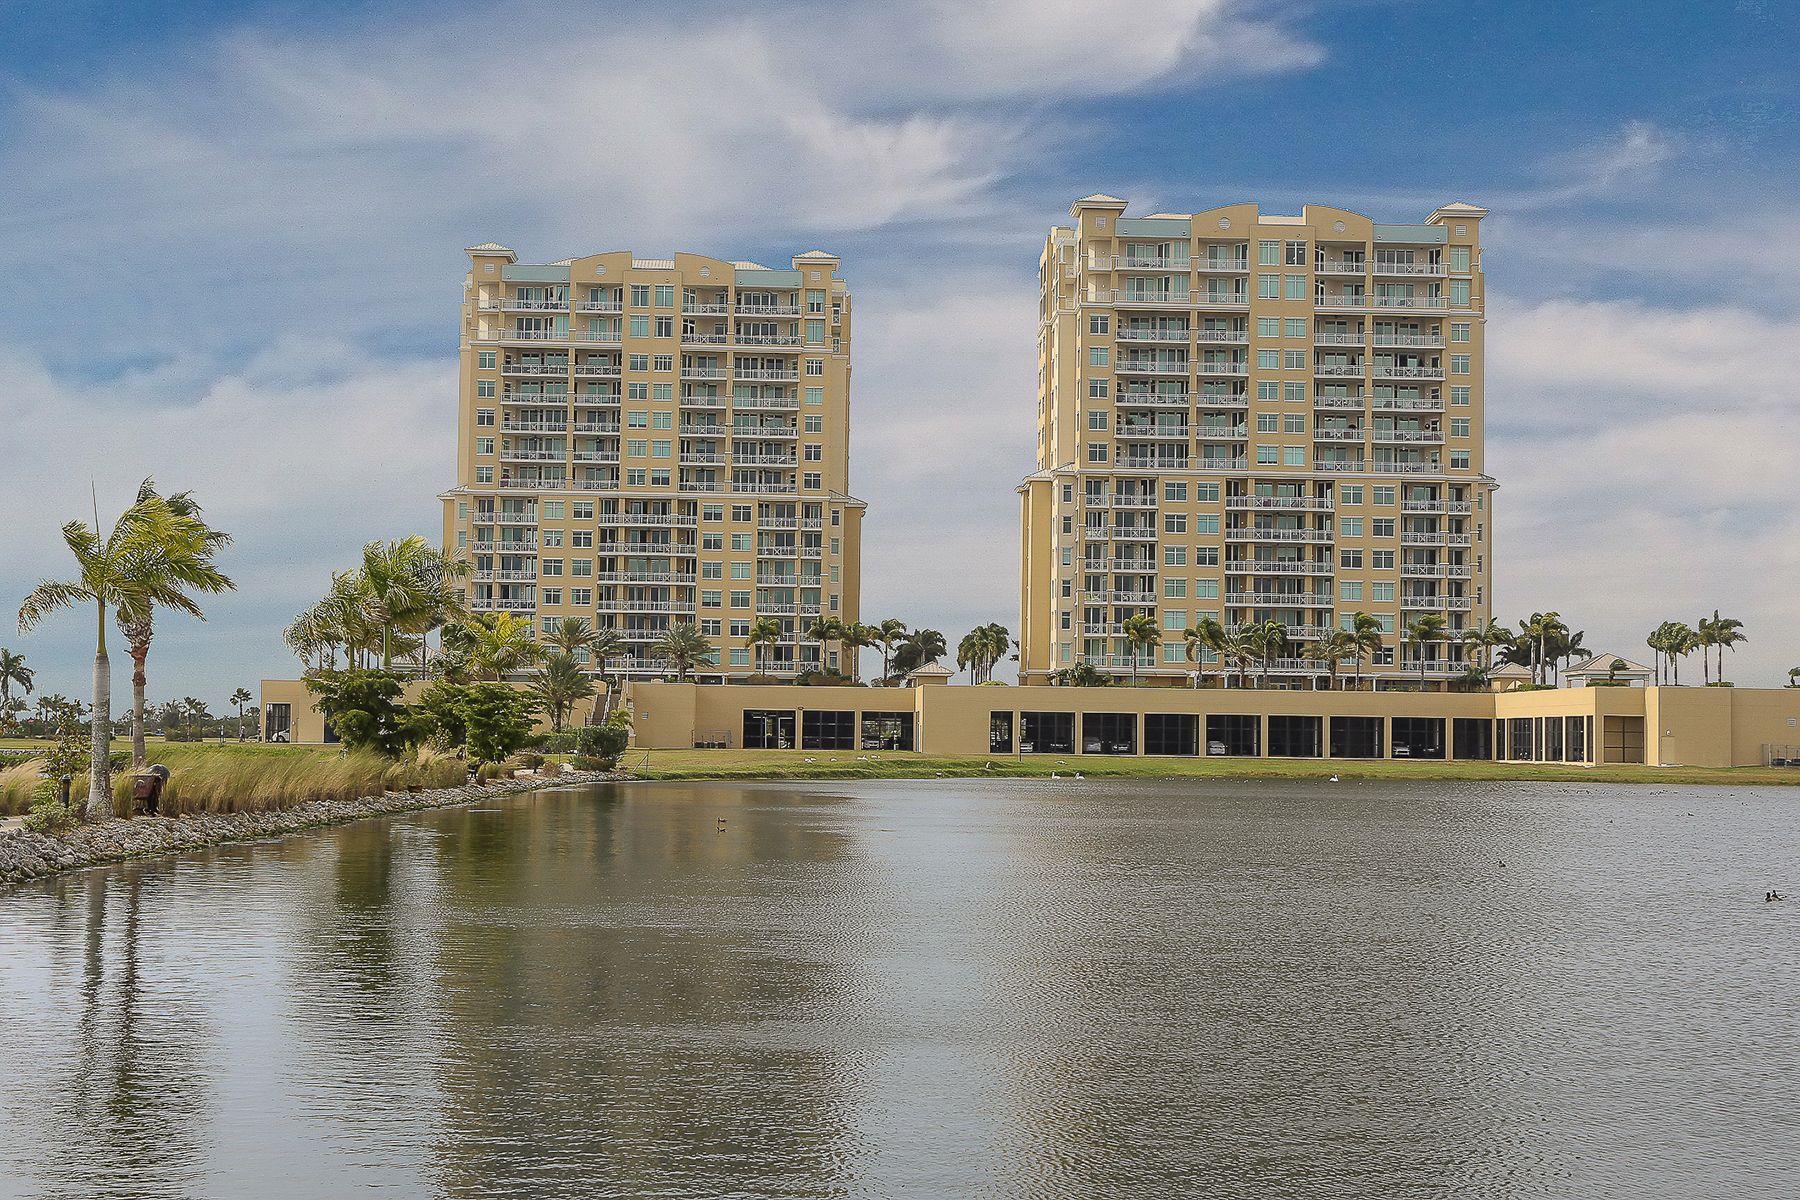 Condominium for Sale at BEL MARE AT RIVIERA DUNES 130 Riviera Dunes Way 501 Palmetto, Florida 34221 United States